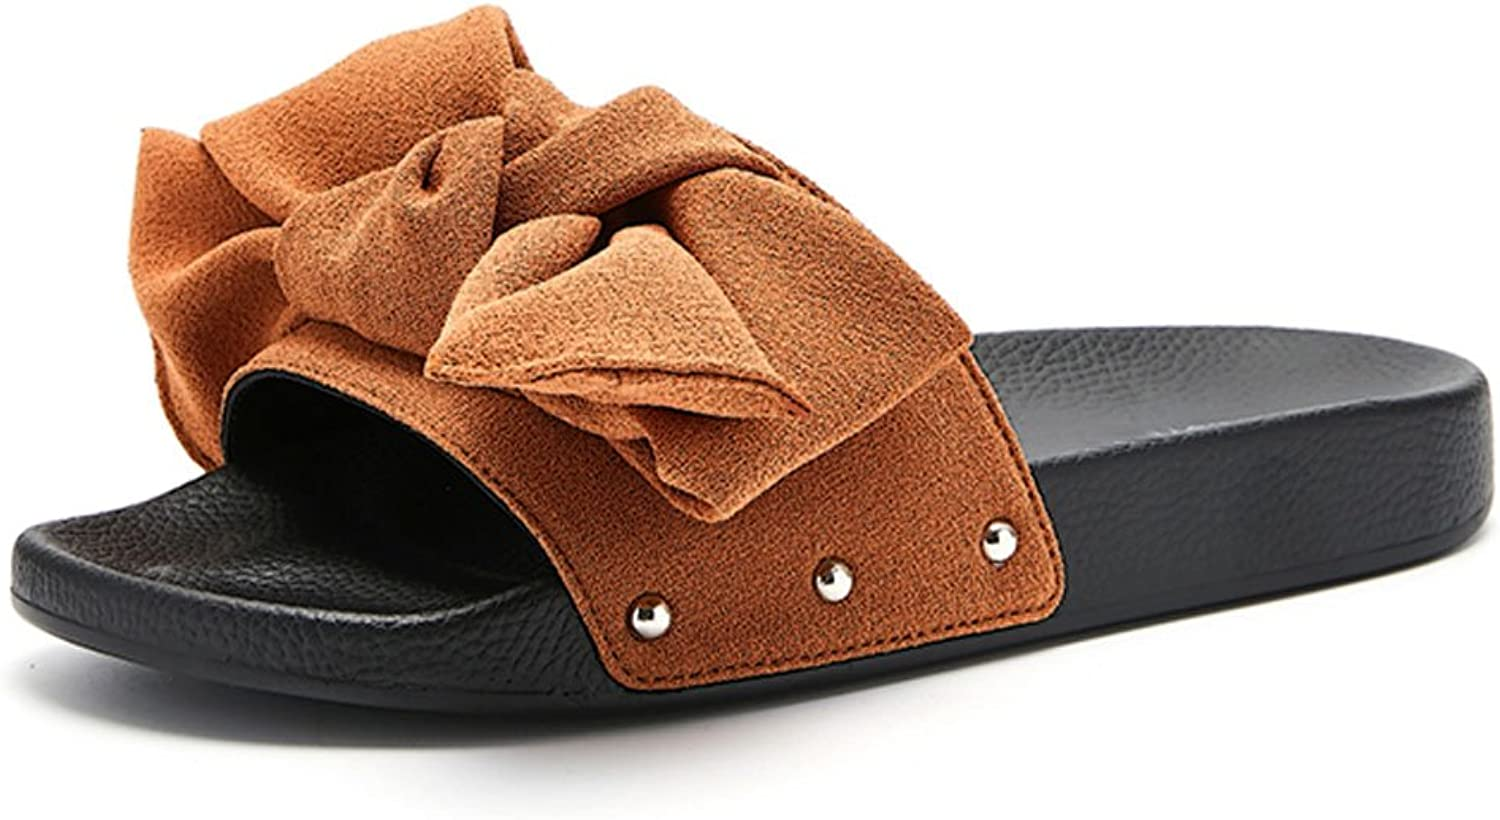 LIUXUEPING Flat Slippers Female Summer Comfortable Breathable Women Slippers Low-Heeled Slippers Casual Slippers.